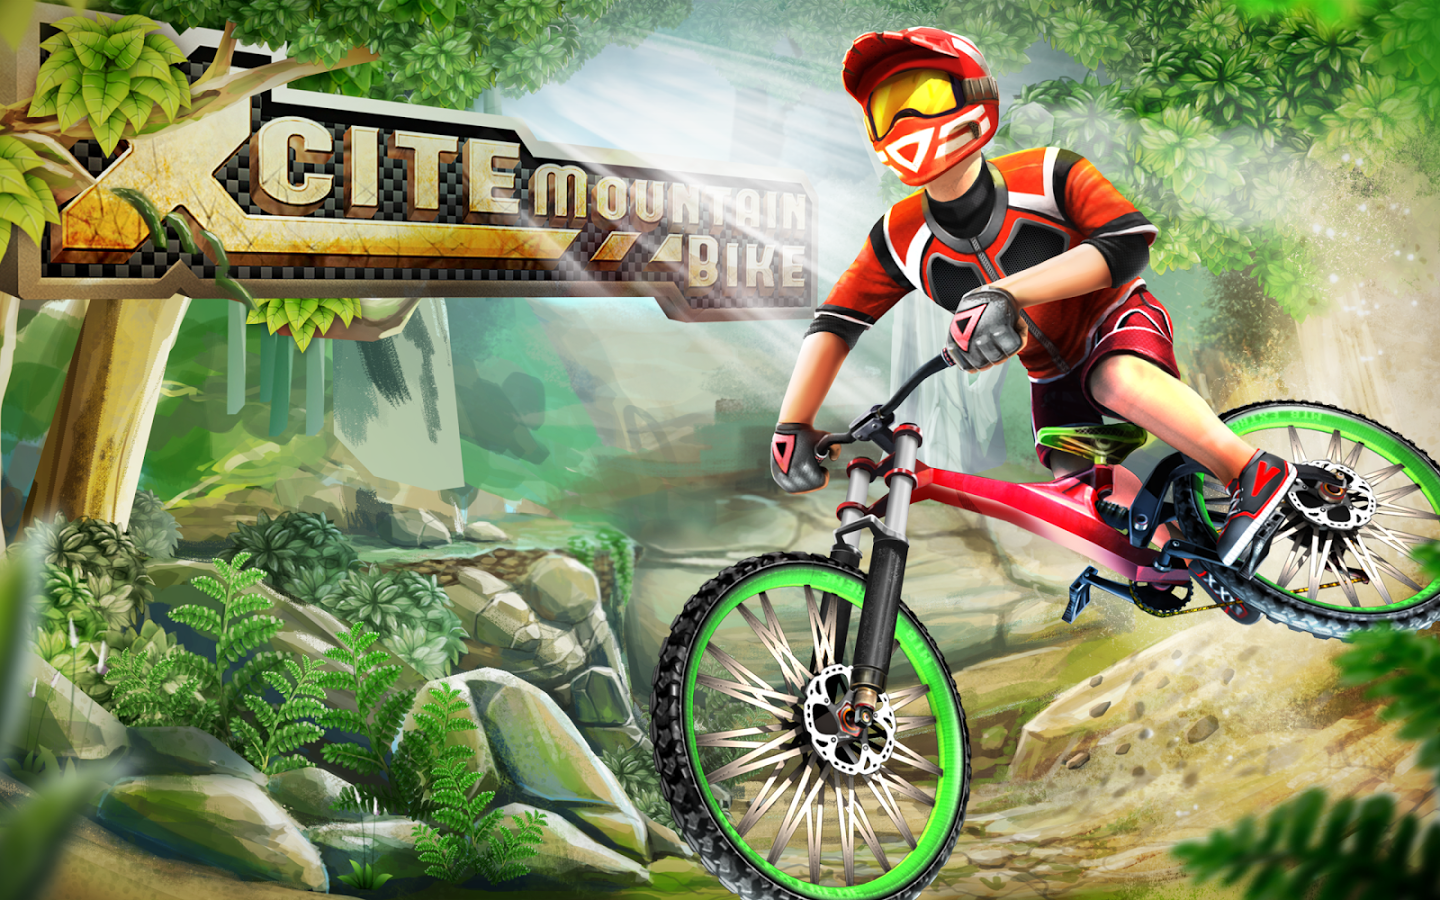 Cycling Games Cycles News Latest Cycles Upcoming Cycles 1440x900